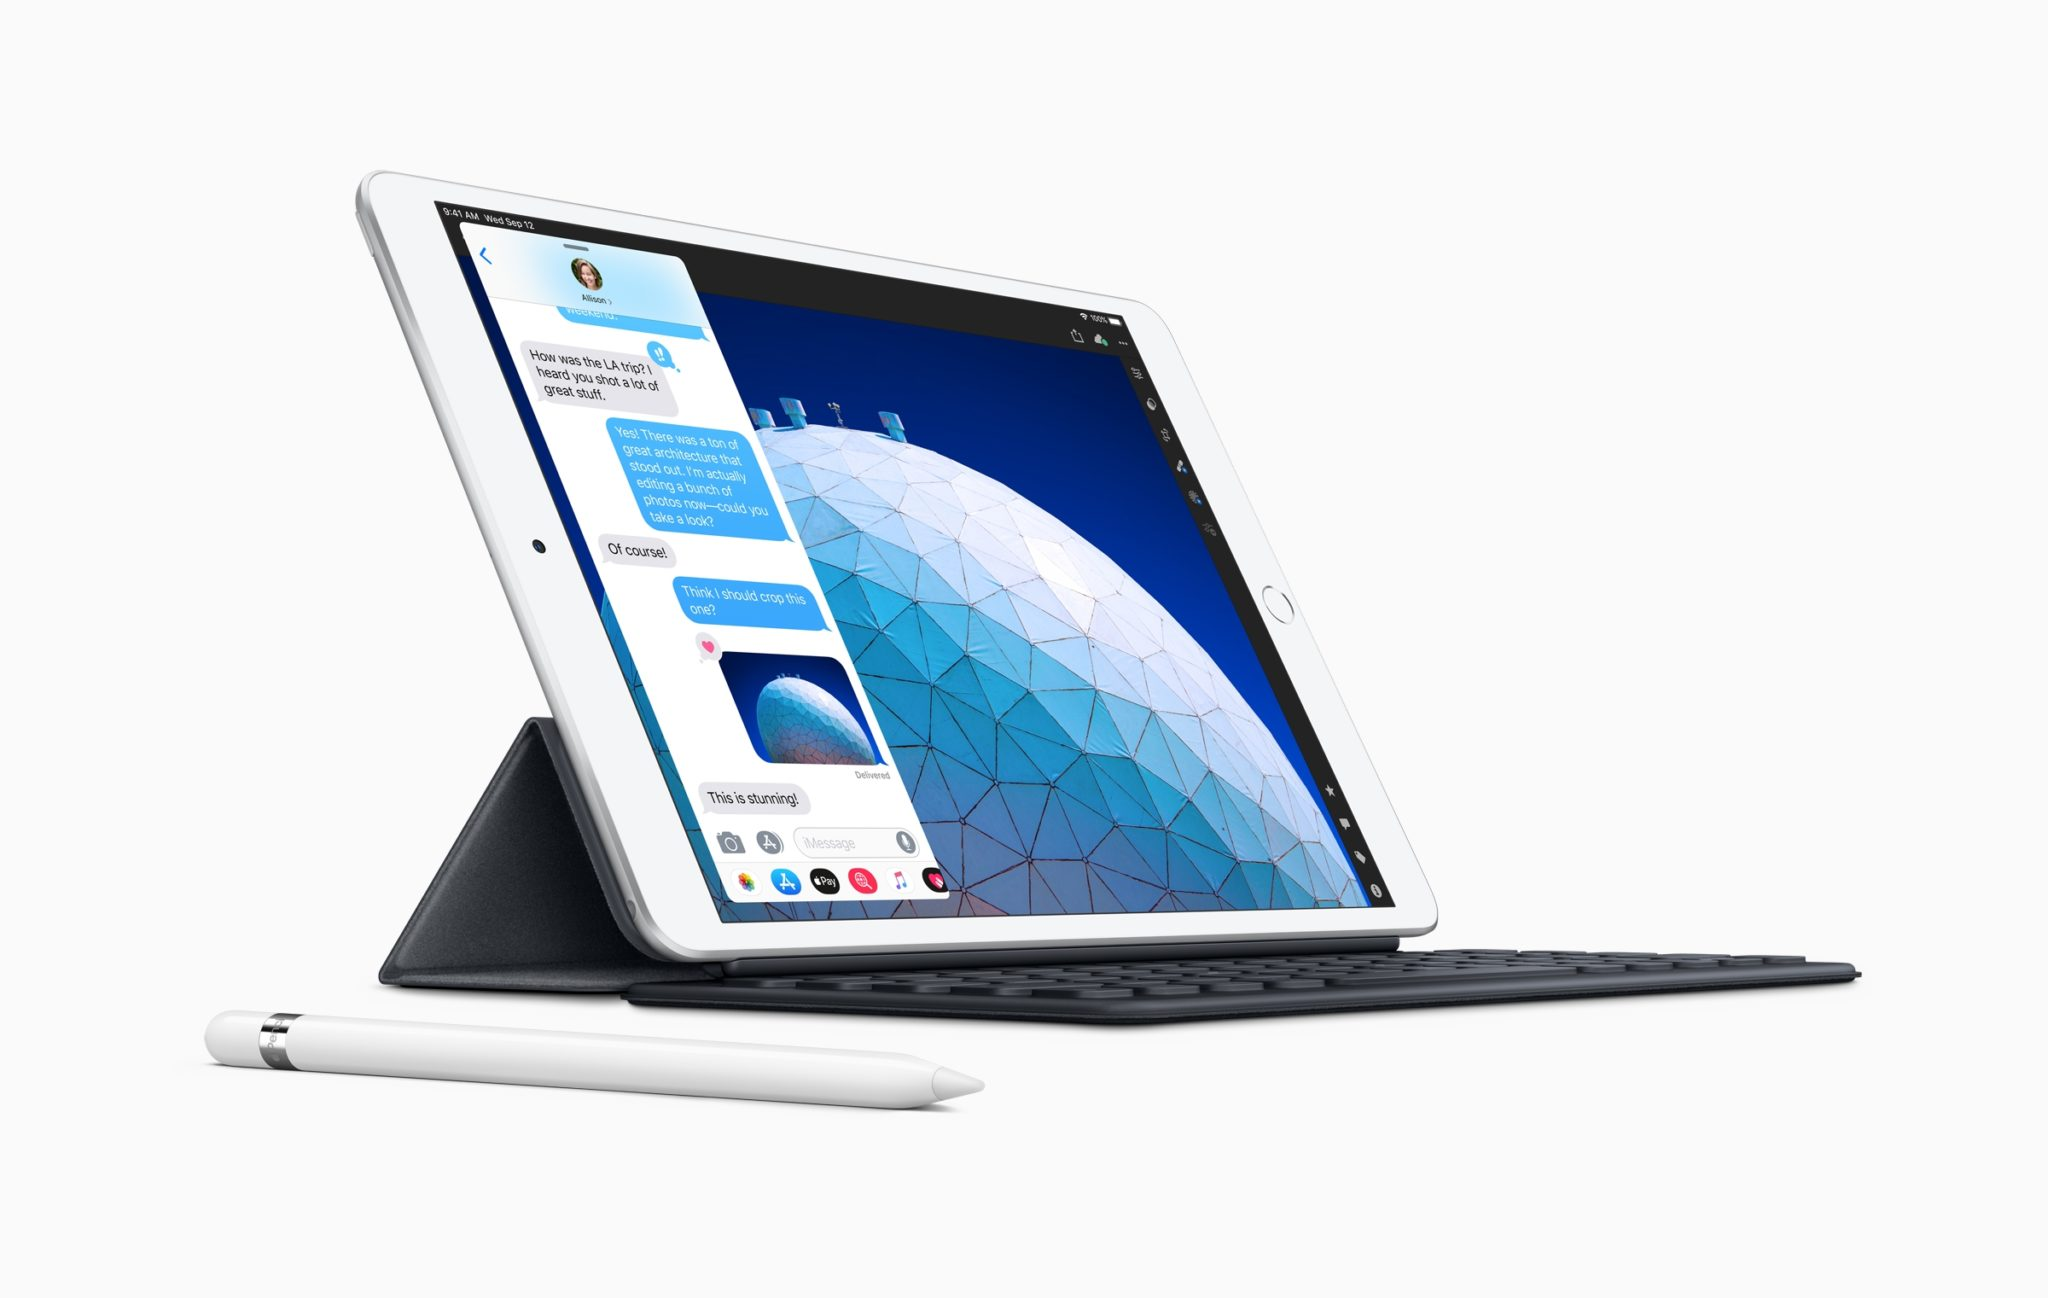 New iPad Air smart keyboard with apple pencil 03192019 - Apple si registroval dva nové modely iPadu